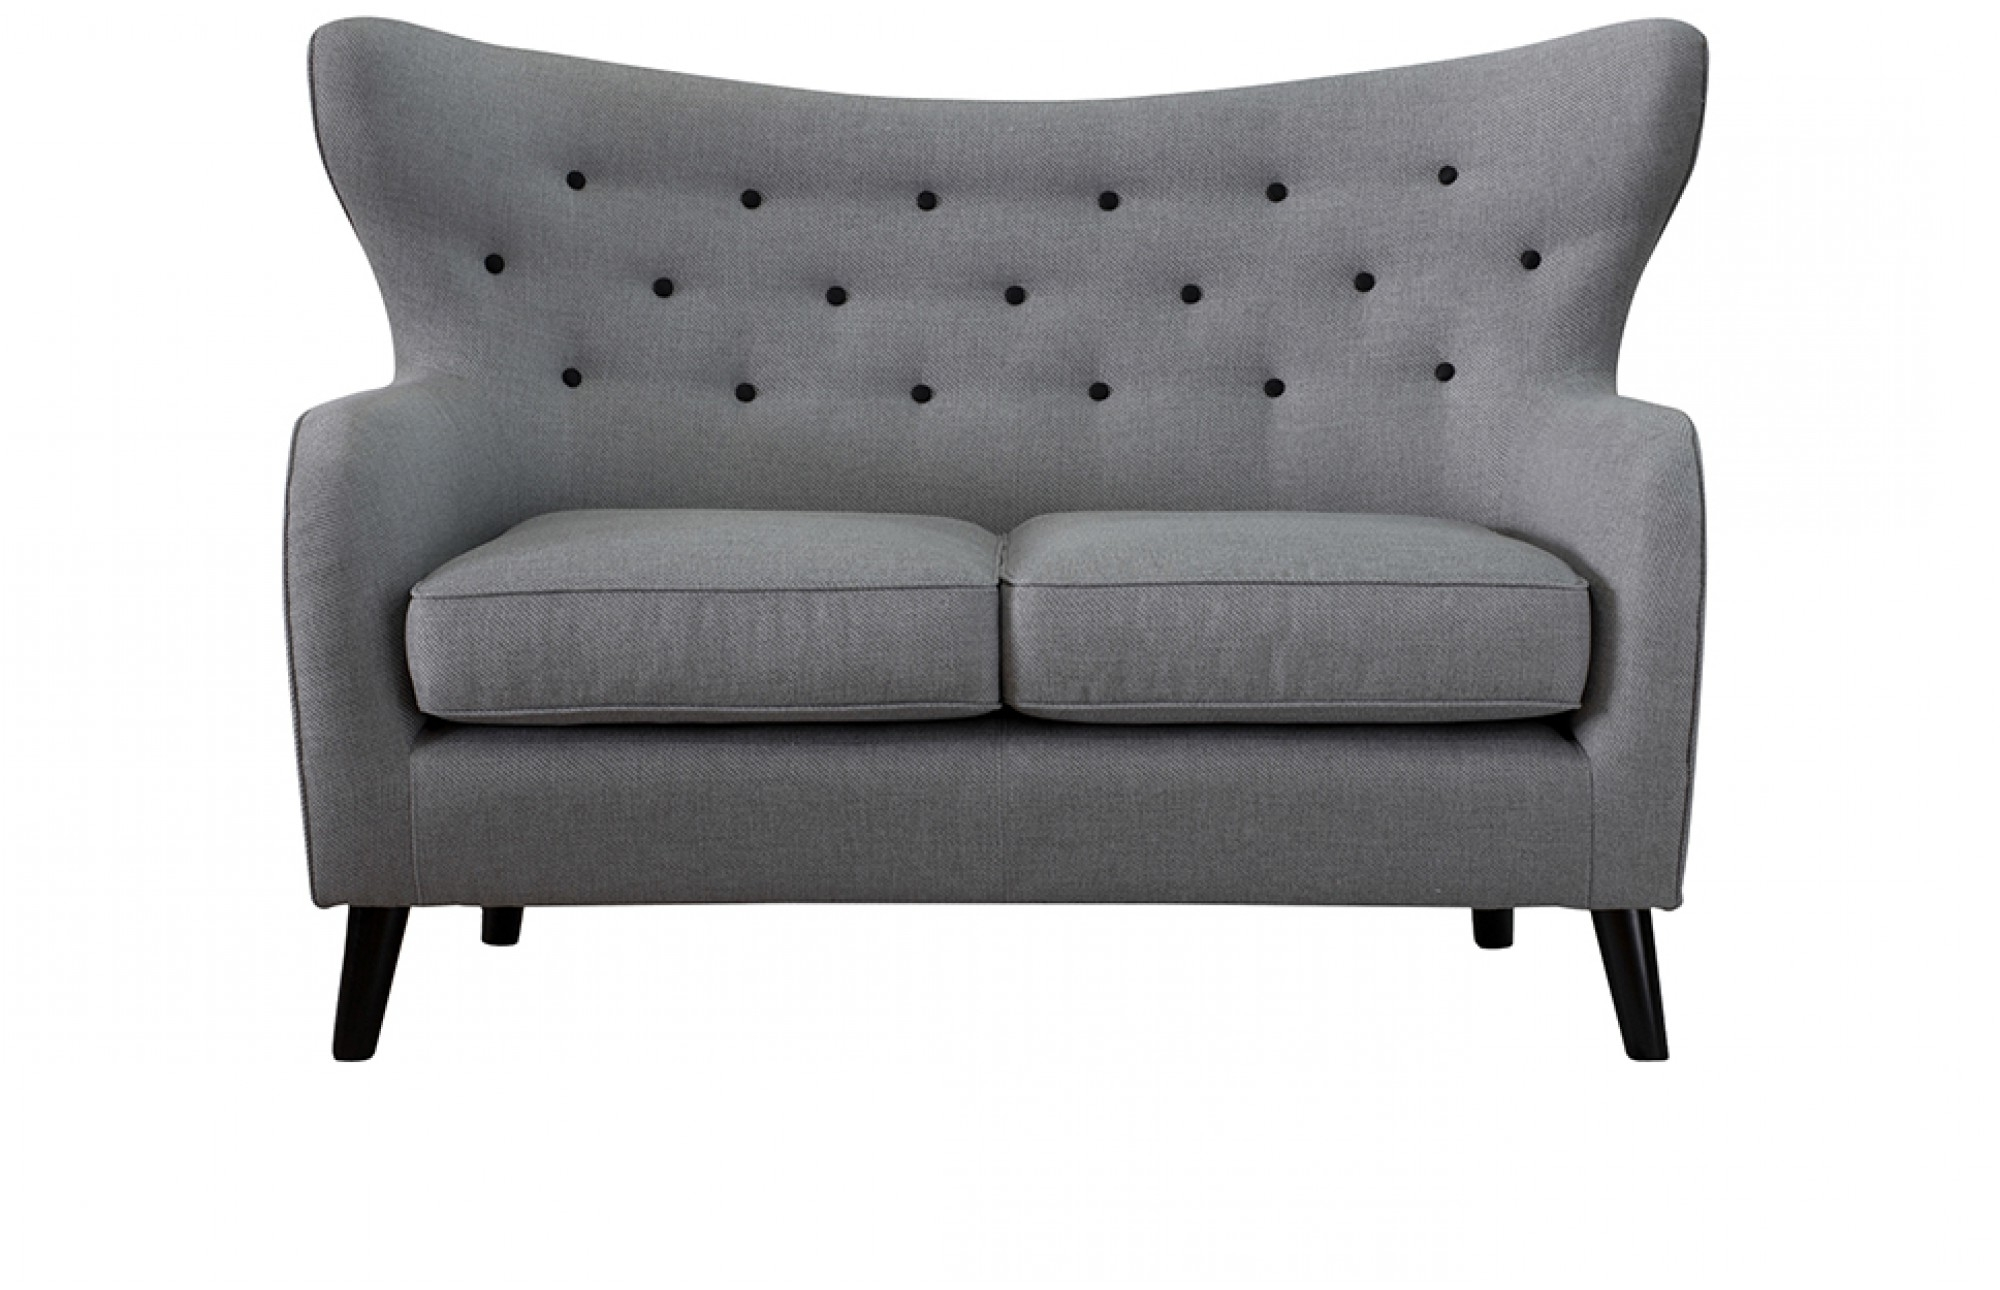 Two Seater Sofas Regarding Current Luxury Two Seater Couch 51 On Sofas And Couches Ideas With Two (View 17 of 20)